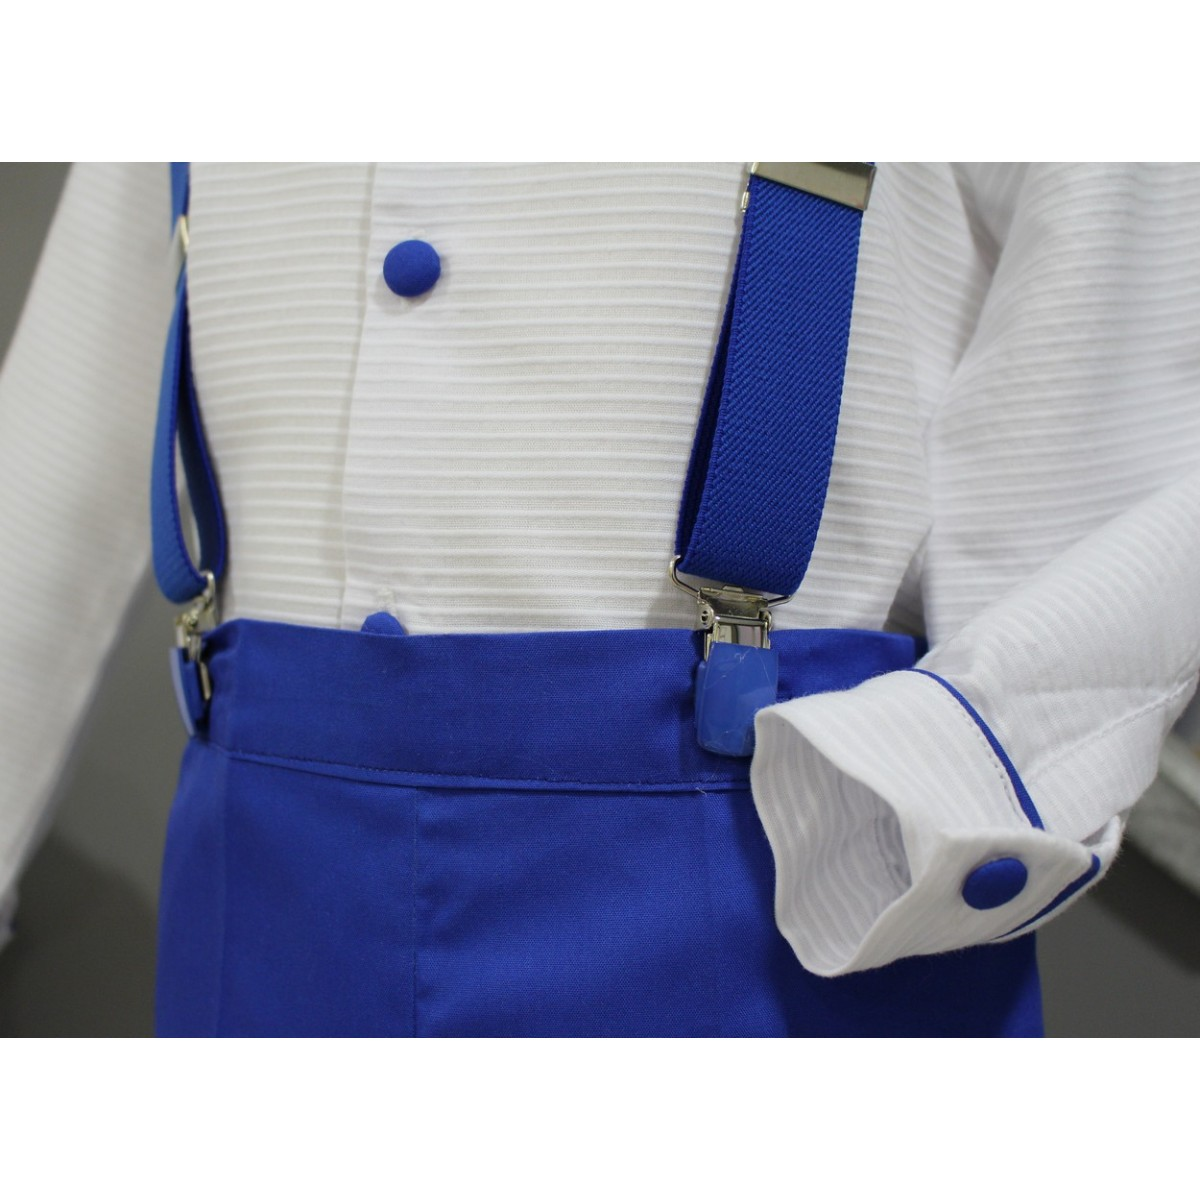 Boy Ring Bearer Outfit.White Shirt And Royal Blue Shorts With Bow Tie. Childrenu0026#39;s Ceremonial ...